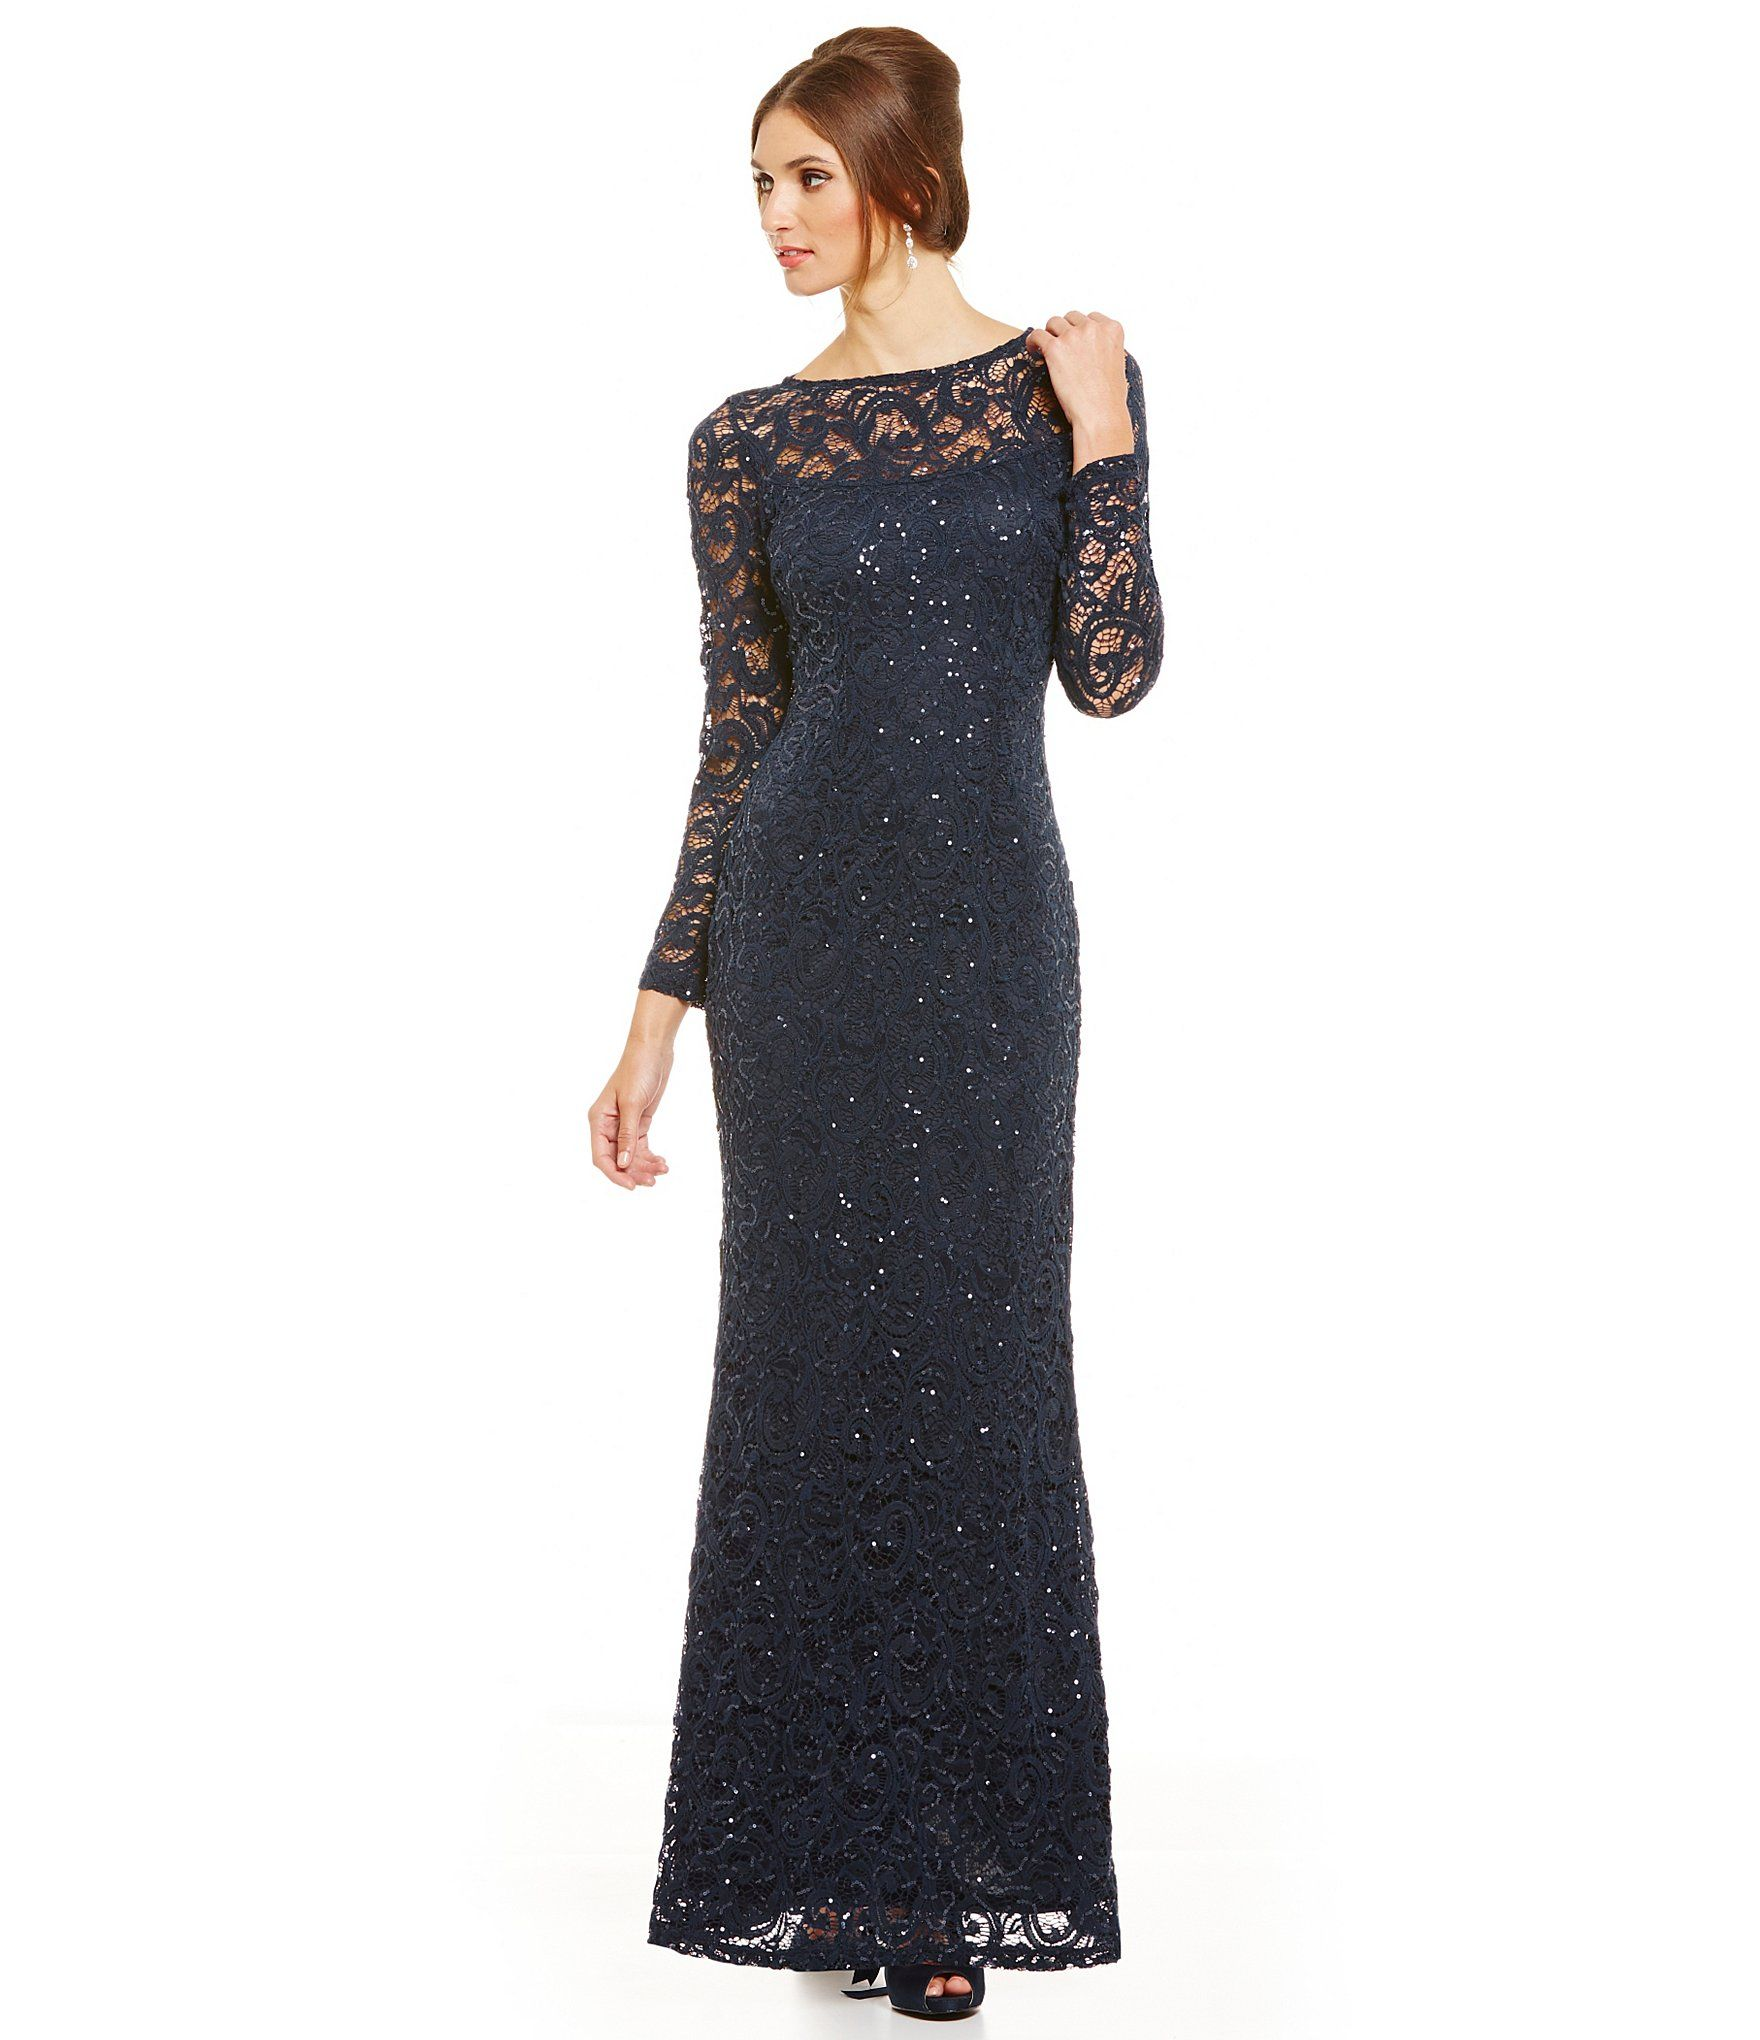 Marina Sequined Lace Long Sleeve Illusion Gown Dillards Illusions